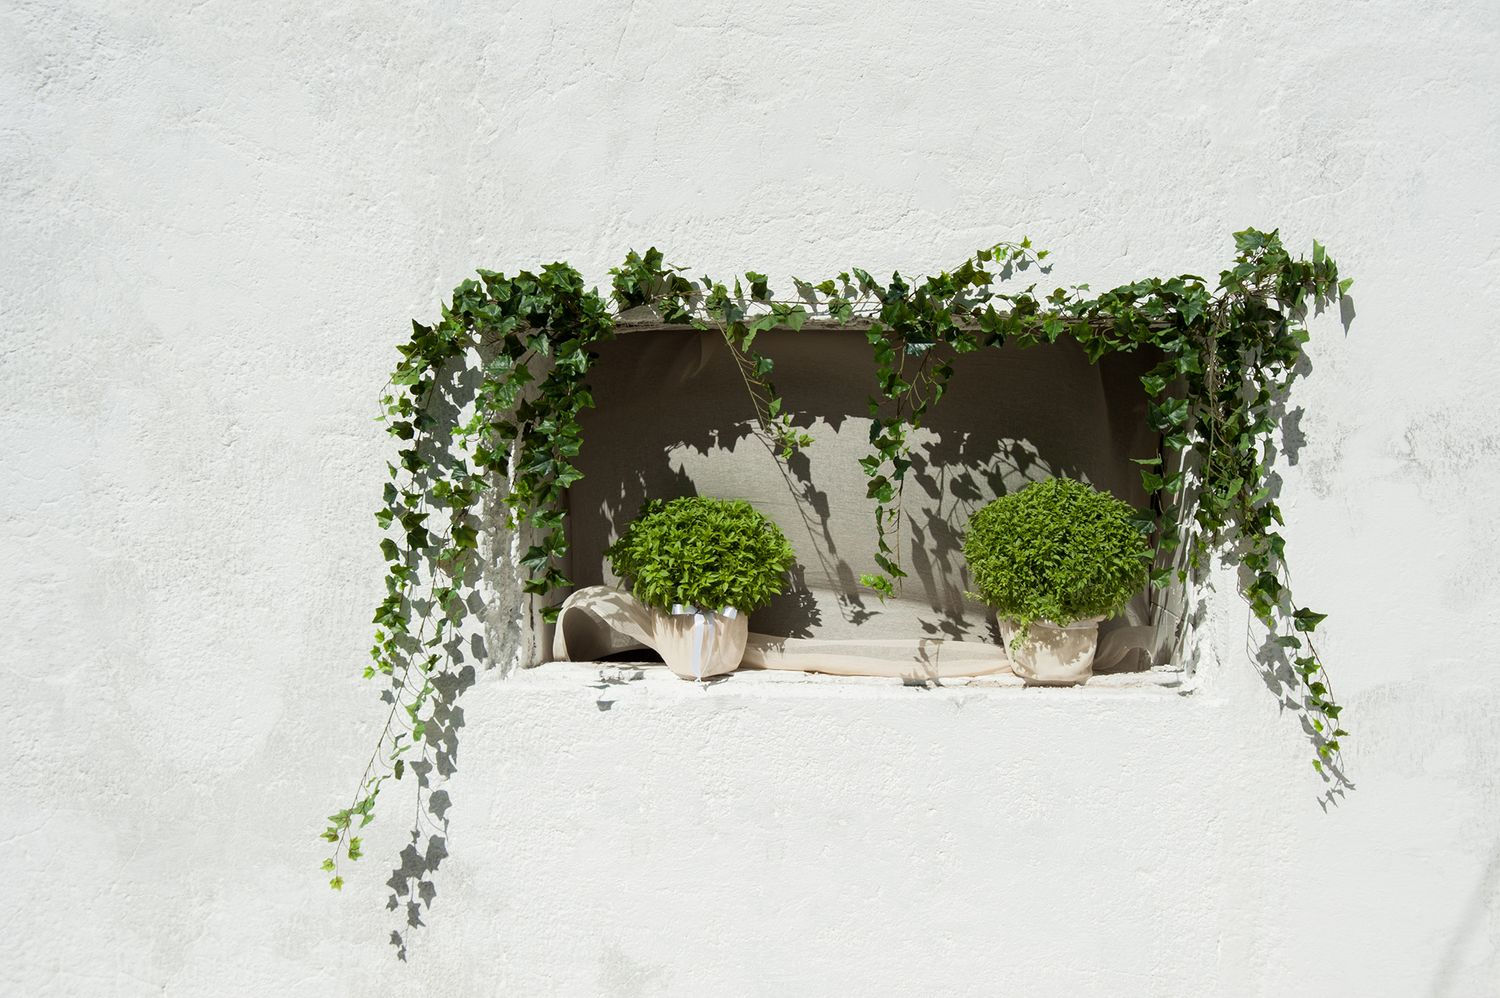 basils decorate a closed window in the island of Poros